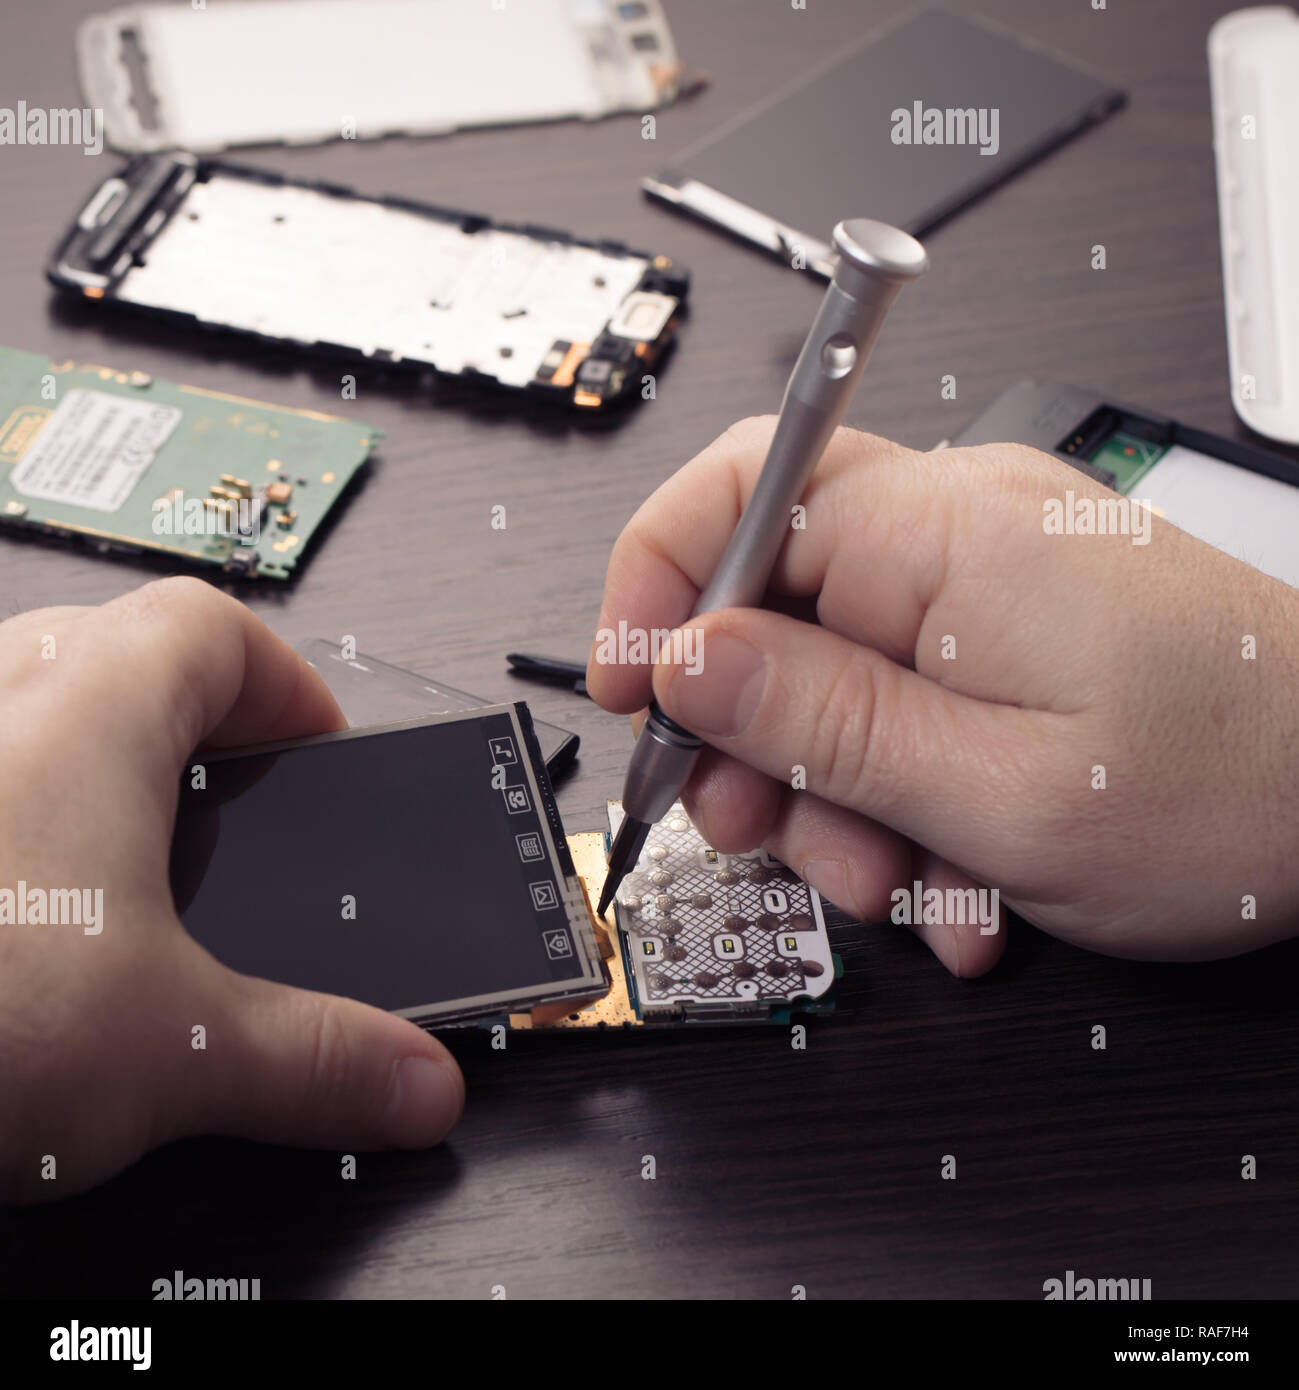 Mobile Phone Repair Hands Closeup On A Wooden Table Stock Photo Alamy